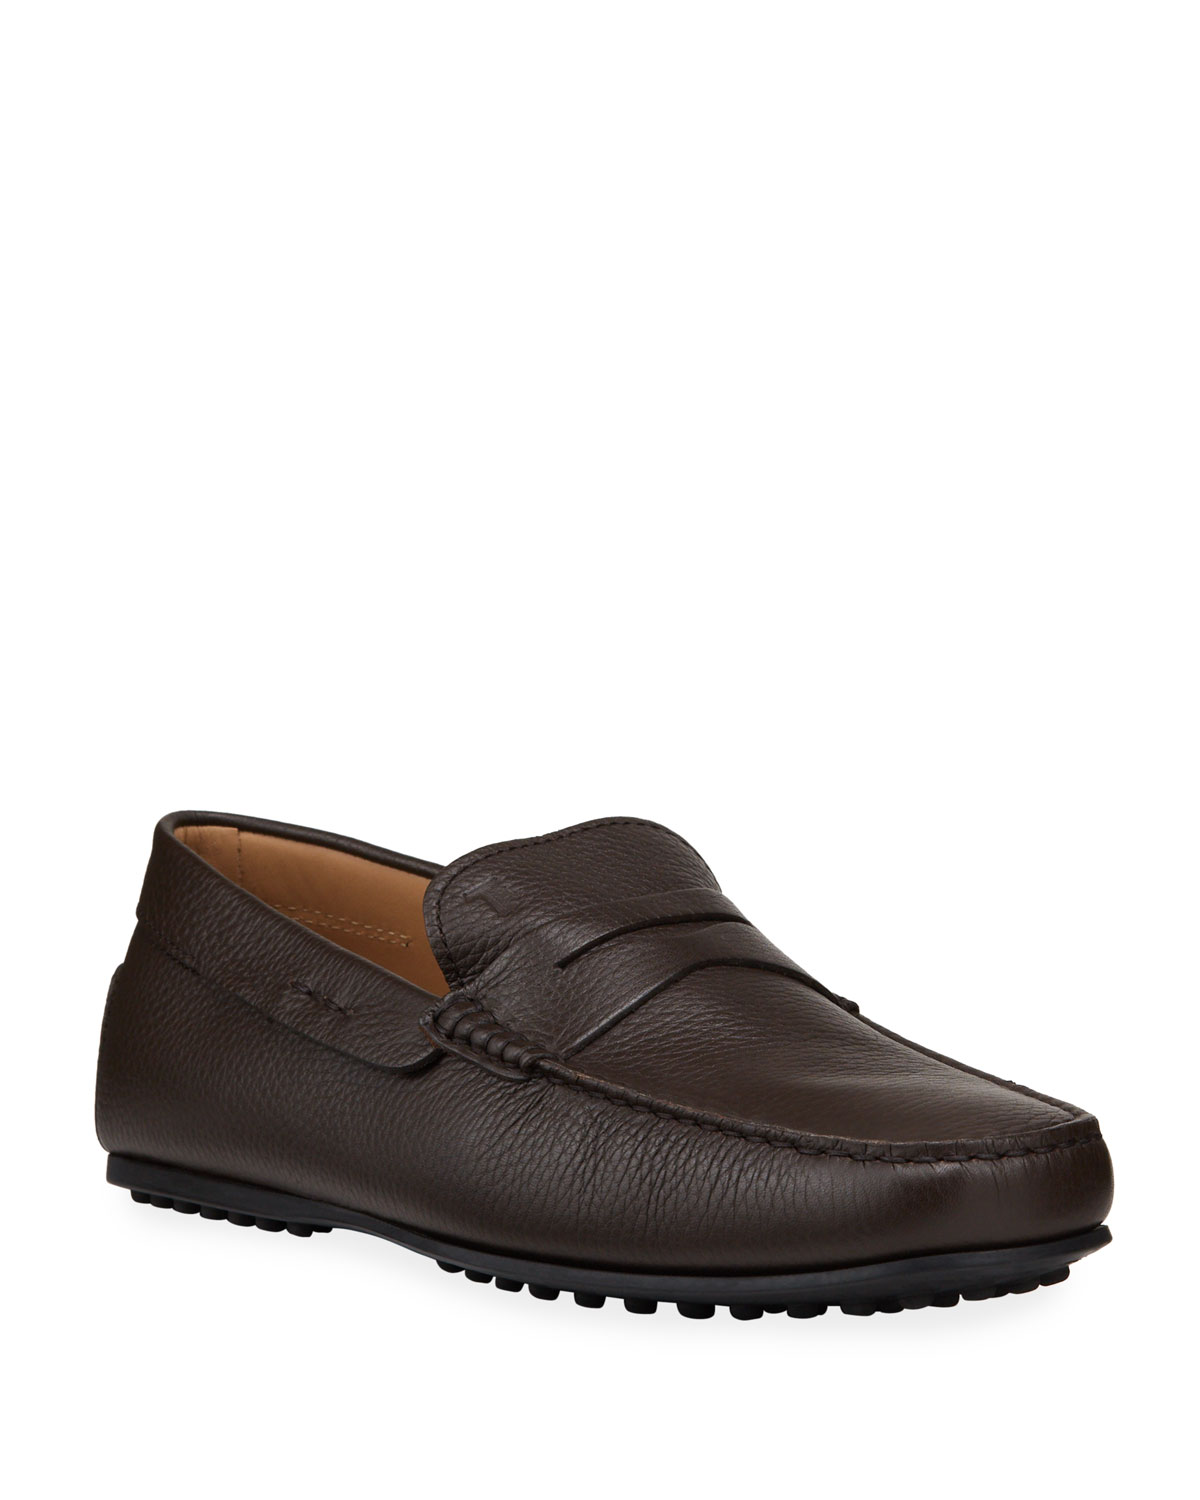 Tod's MEN'S CITY GOMMINO HAMMERED LEATHER PENNY DRIVERS